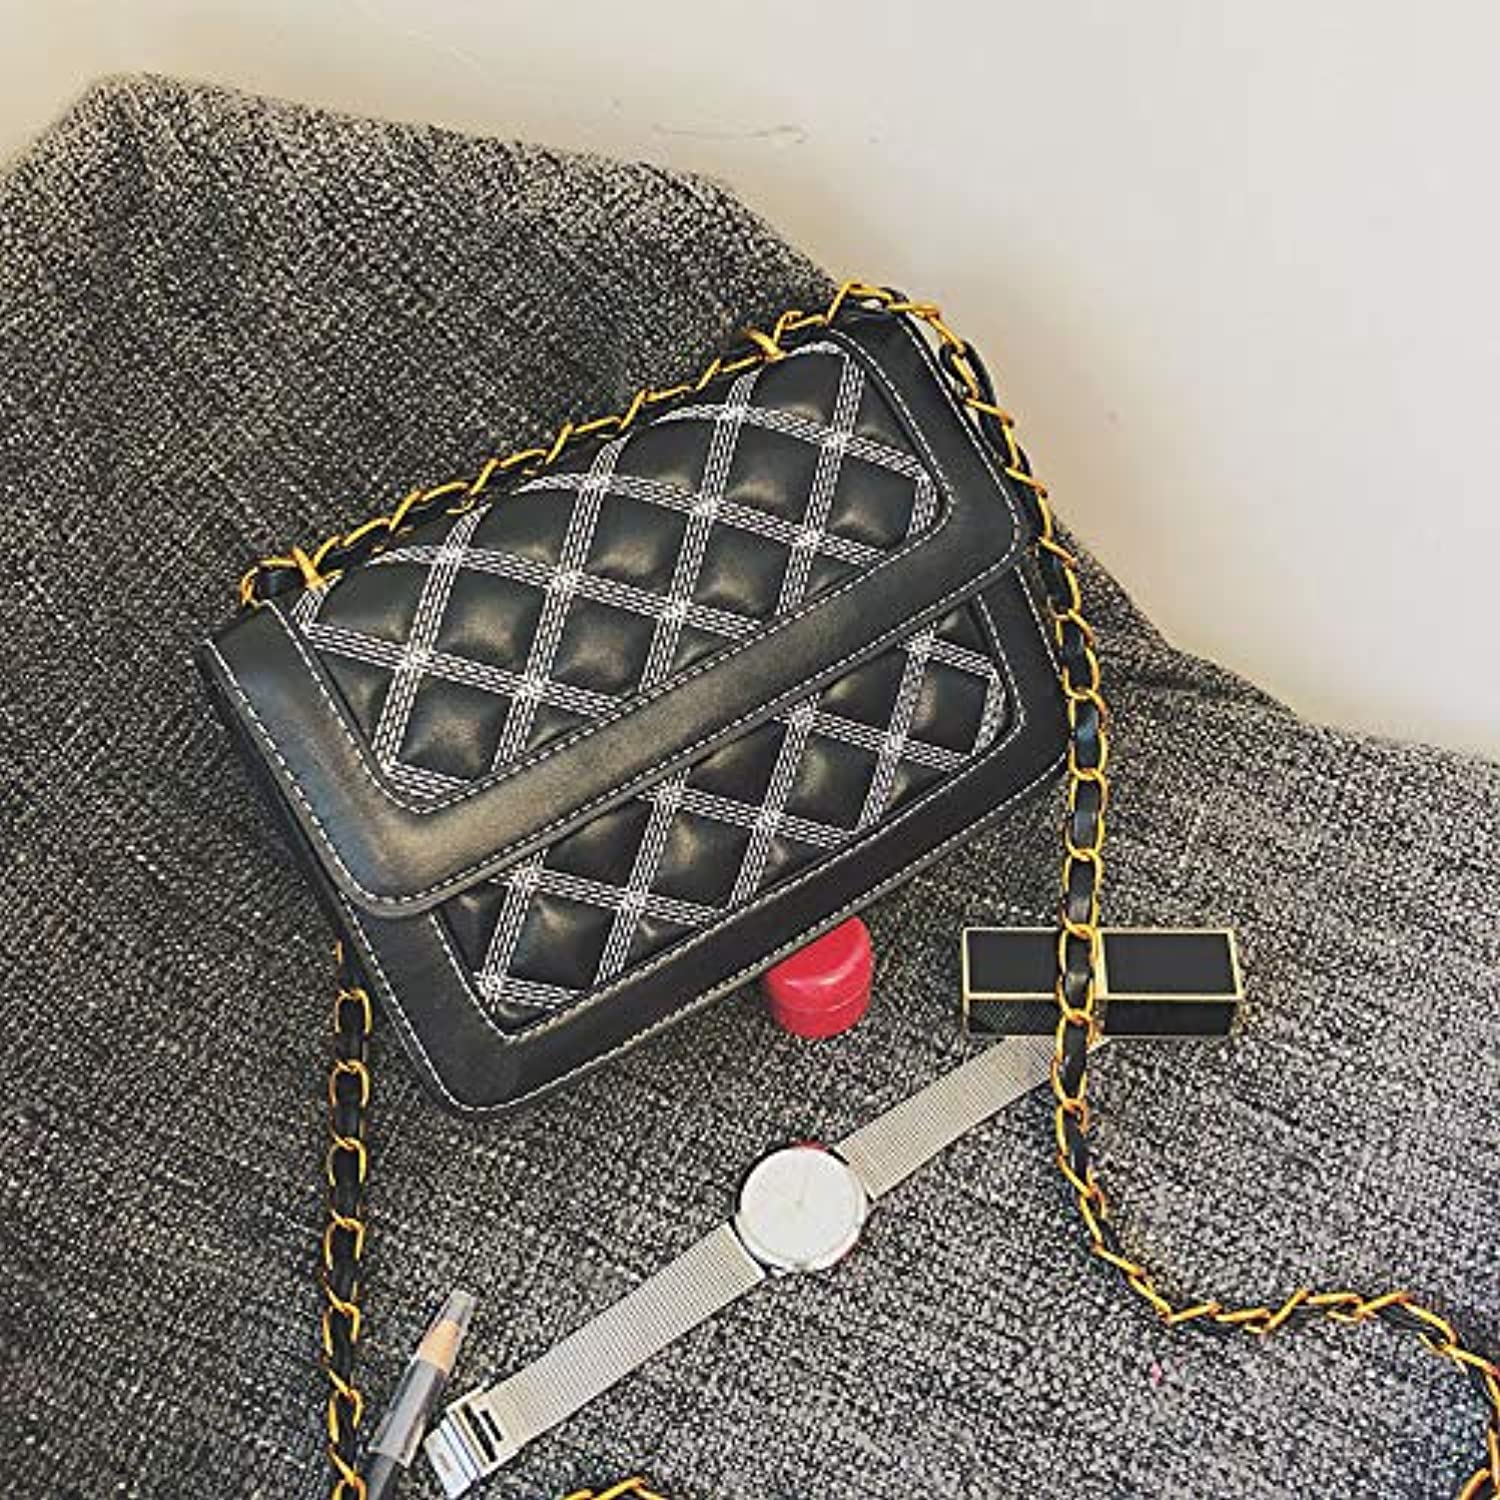 WANGZHAO Leather Bags, Women's Bags, Shoulder Bag, Cross Bag, Fashion.